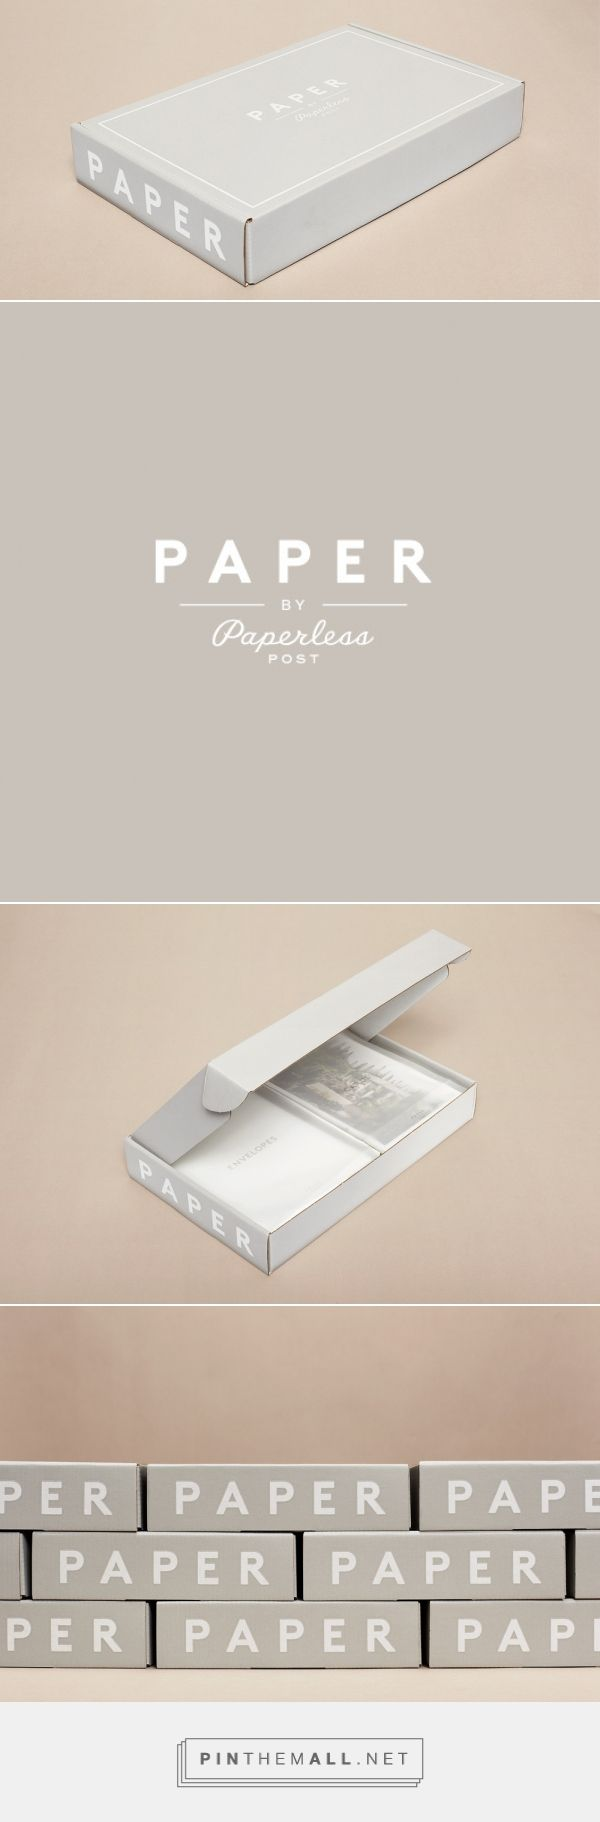 Paperless Post — The Dieline - Branding & Packaging Design - created via https://pinthemall.net